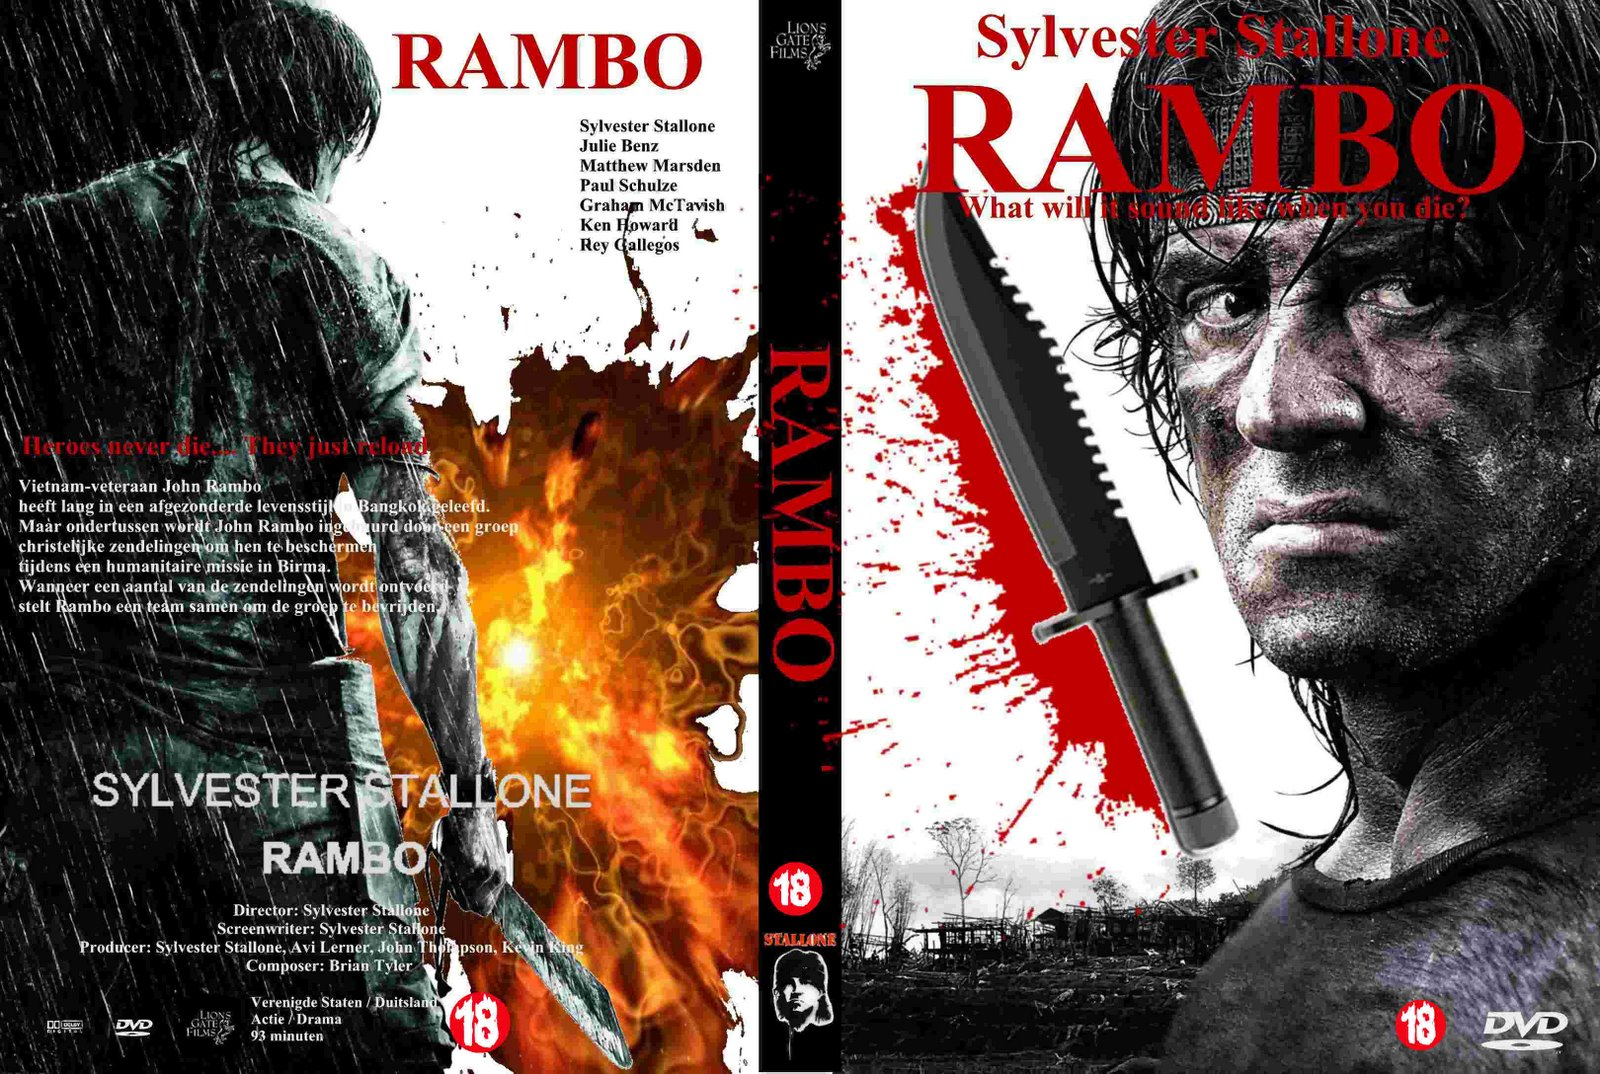 Rambo 5 dvd / Imdb party down south